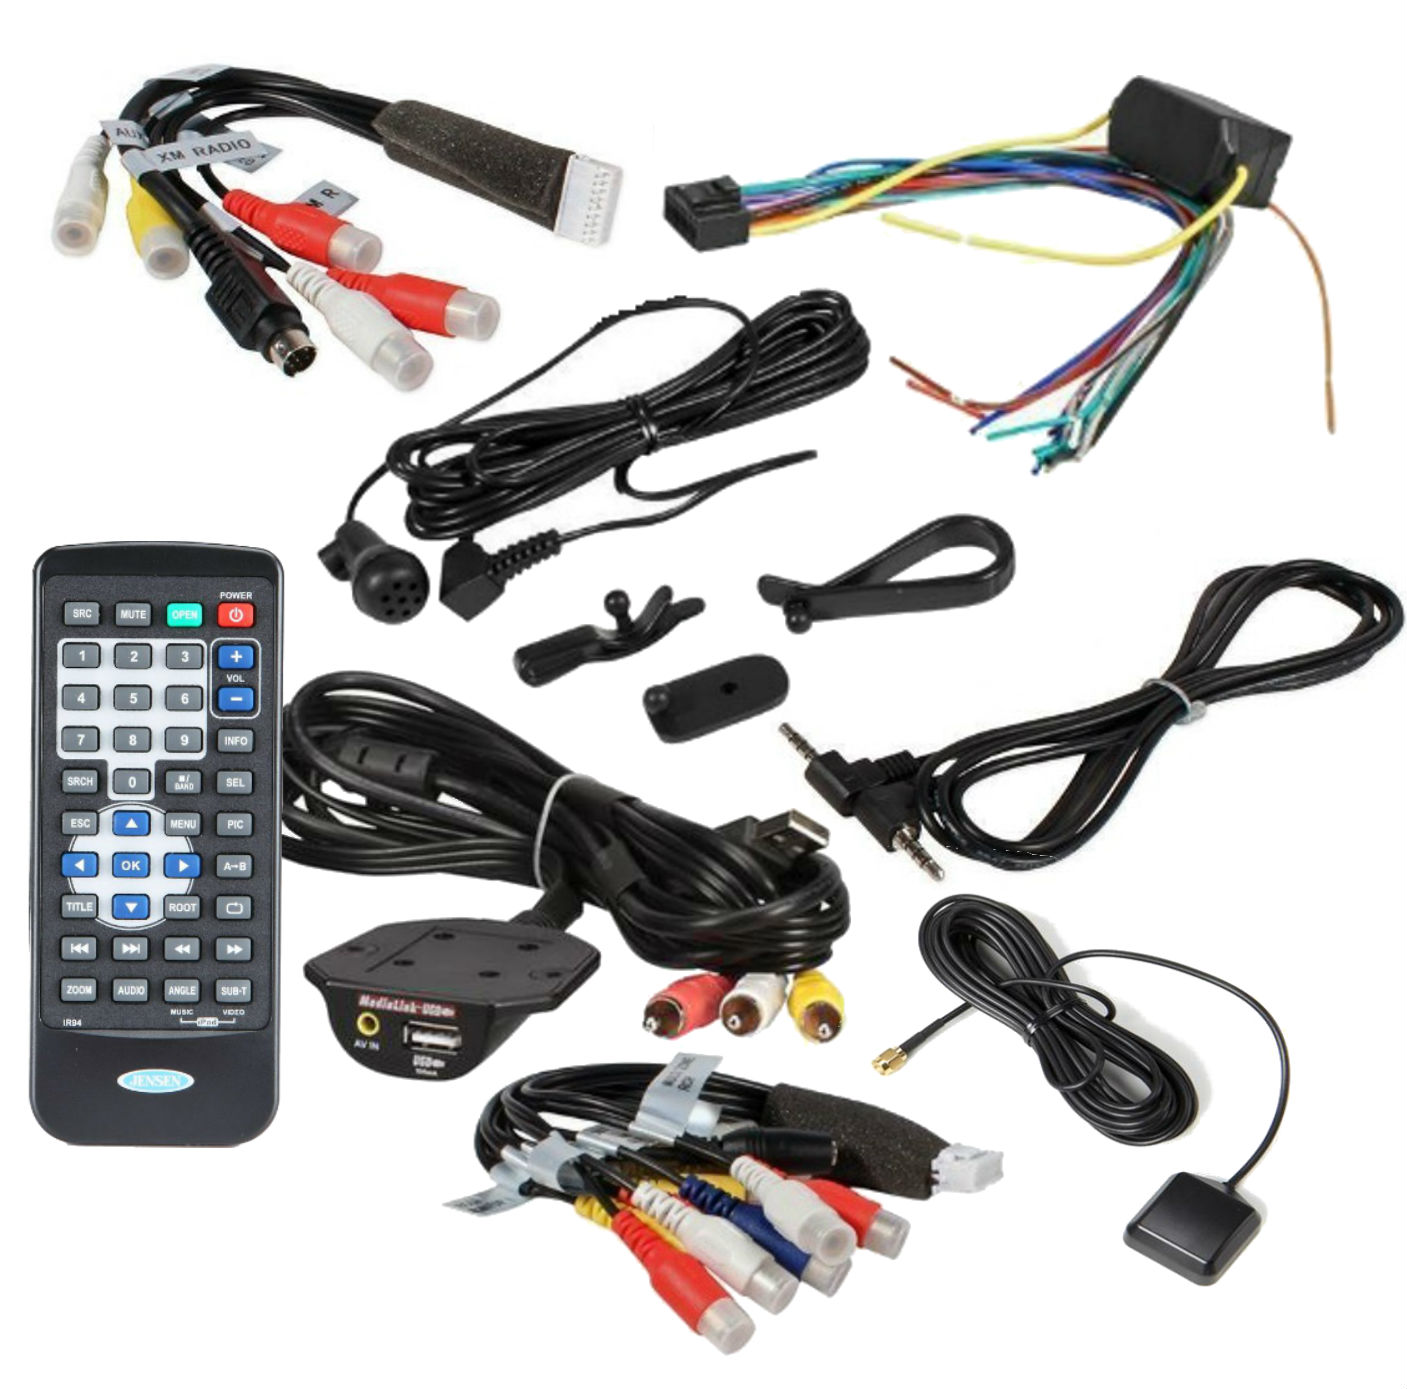 jensen vmbt wire harness rca cable remote aux plug gps antenna jensen wire harness rca cable remote aux plug gps antenna media link for vm9424bt package